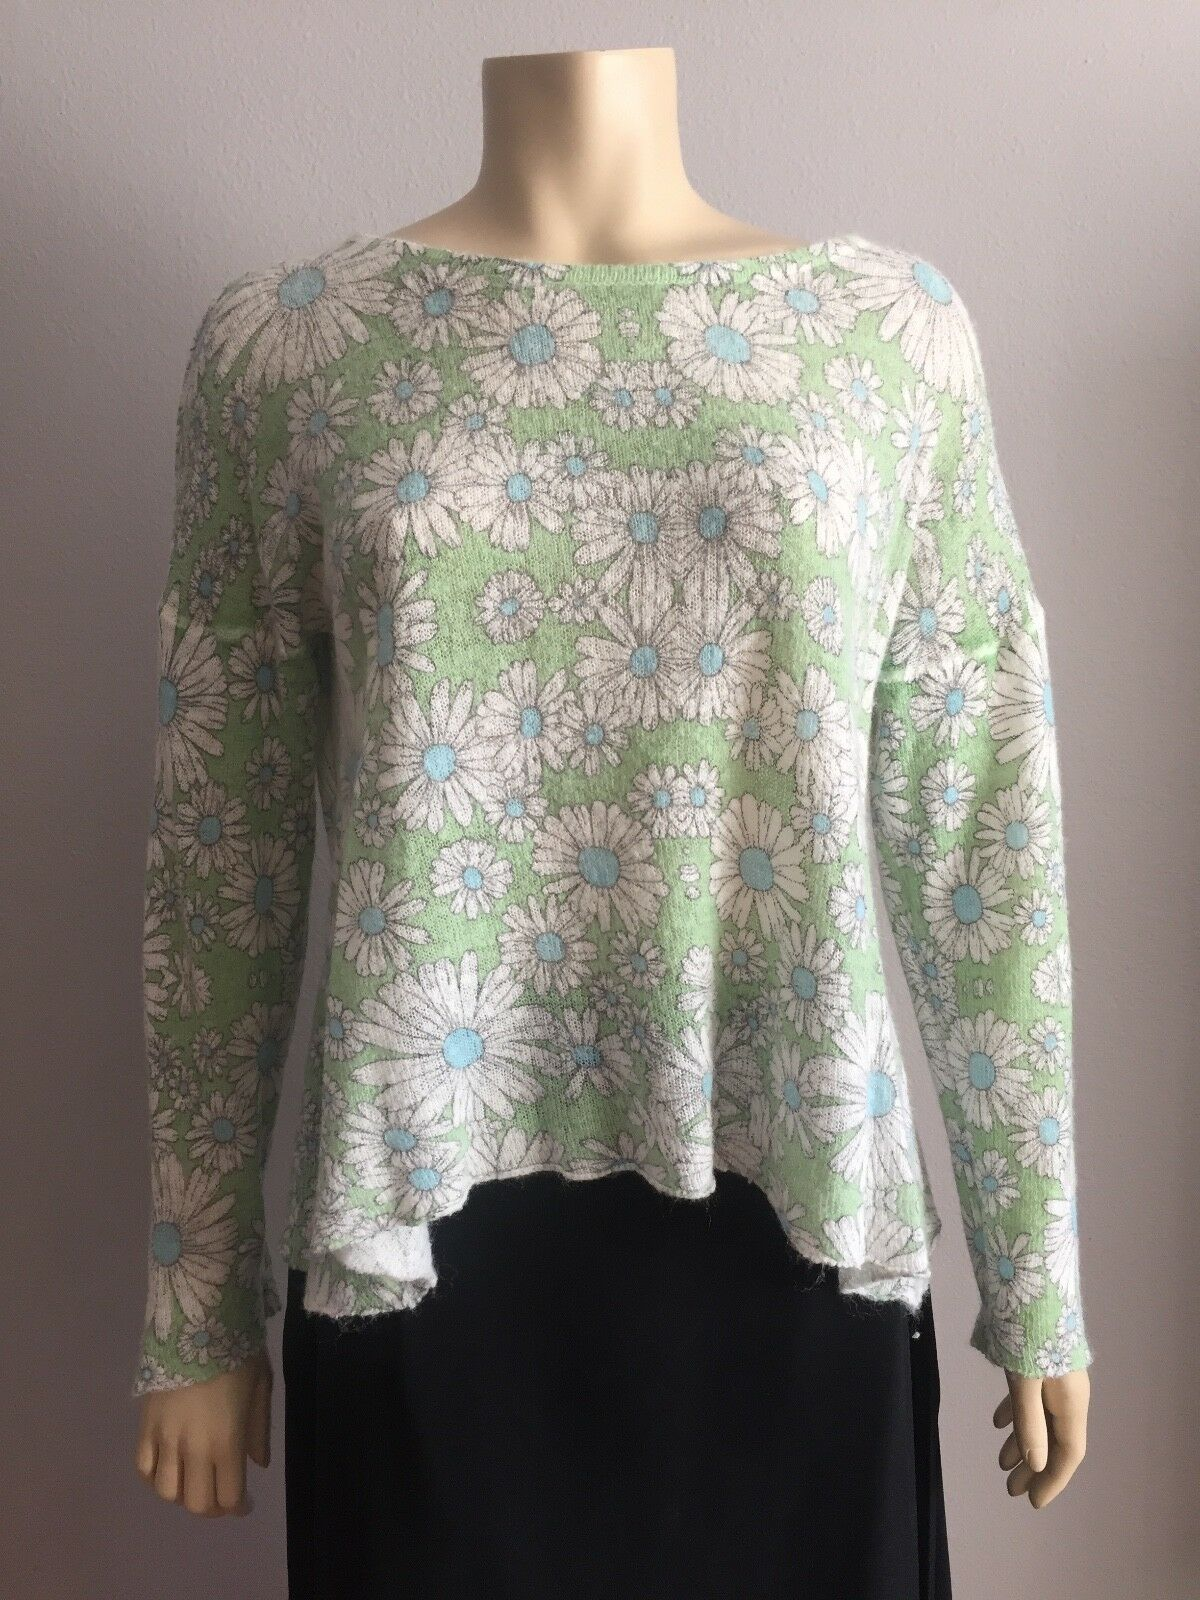 305 WILDFOX white label Daisy Chain Sweater Oversized Slouchy Rare Size S